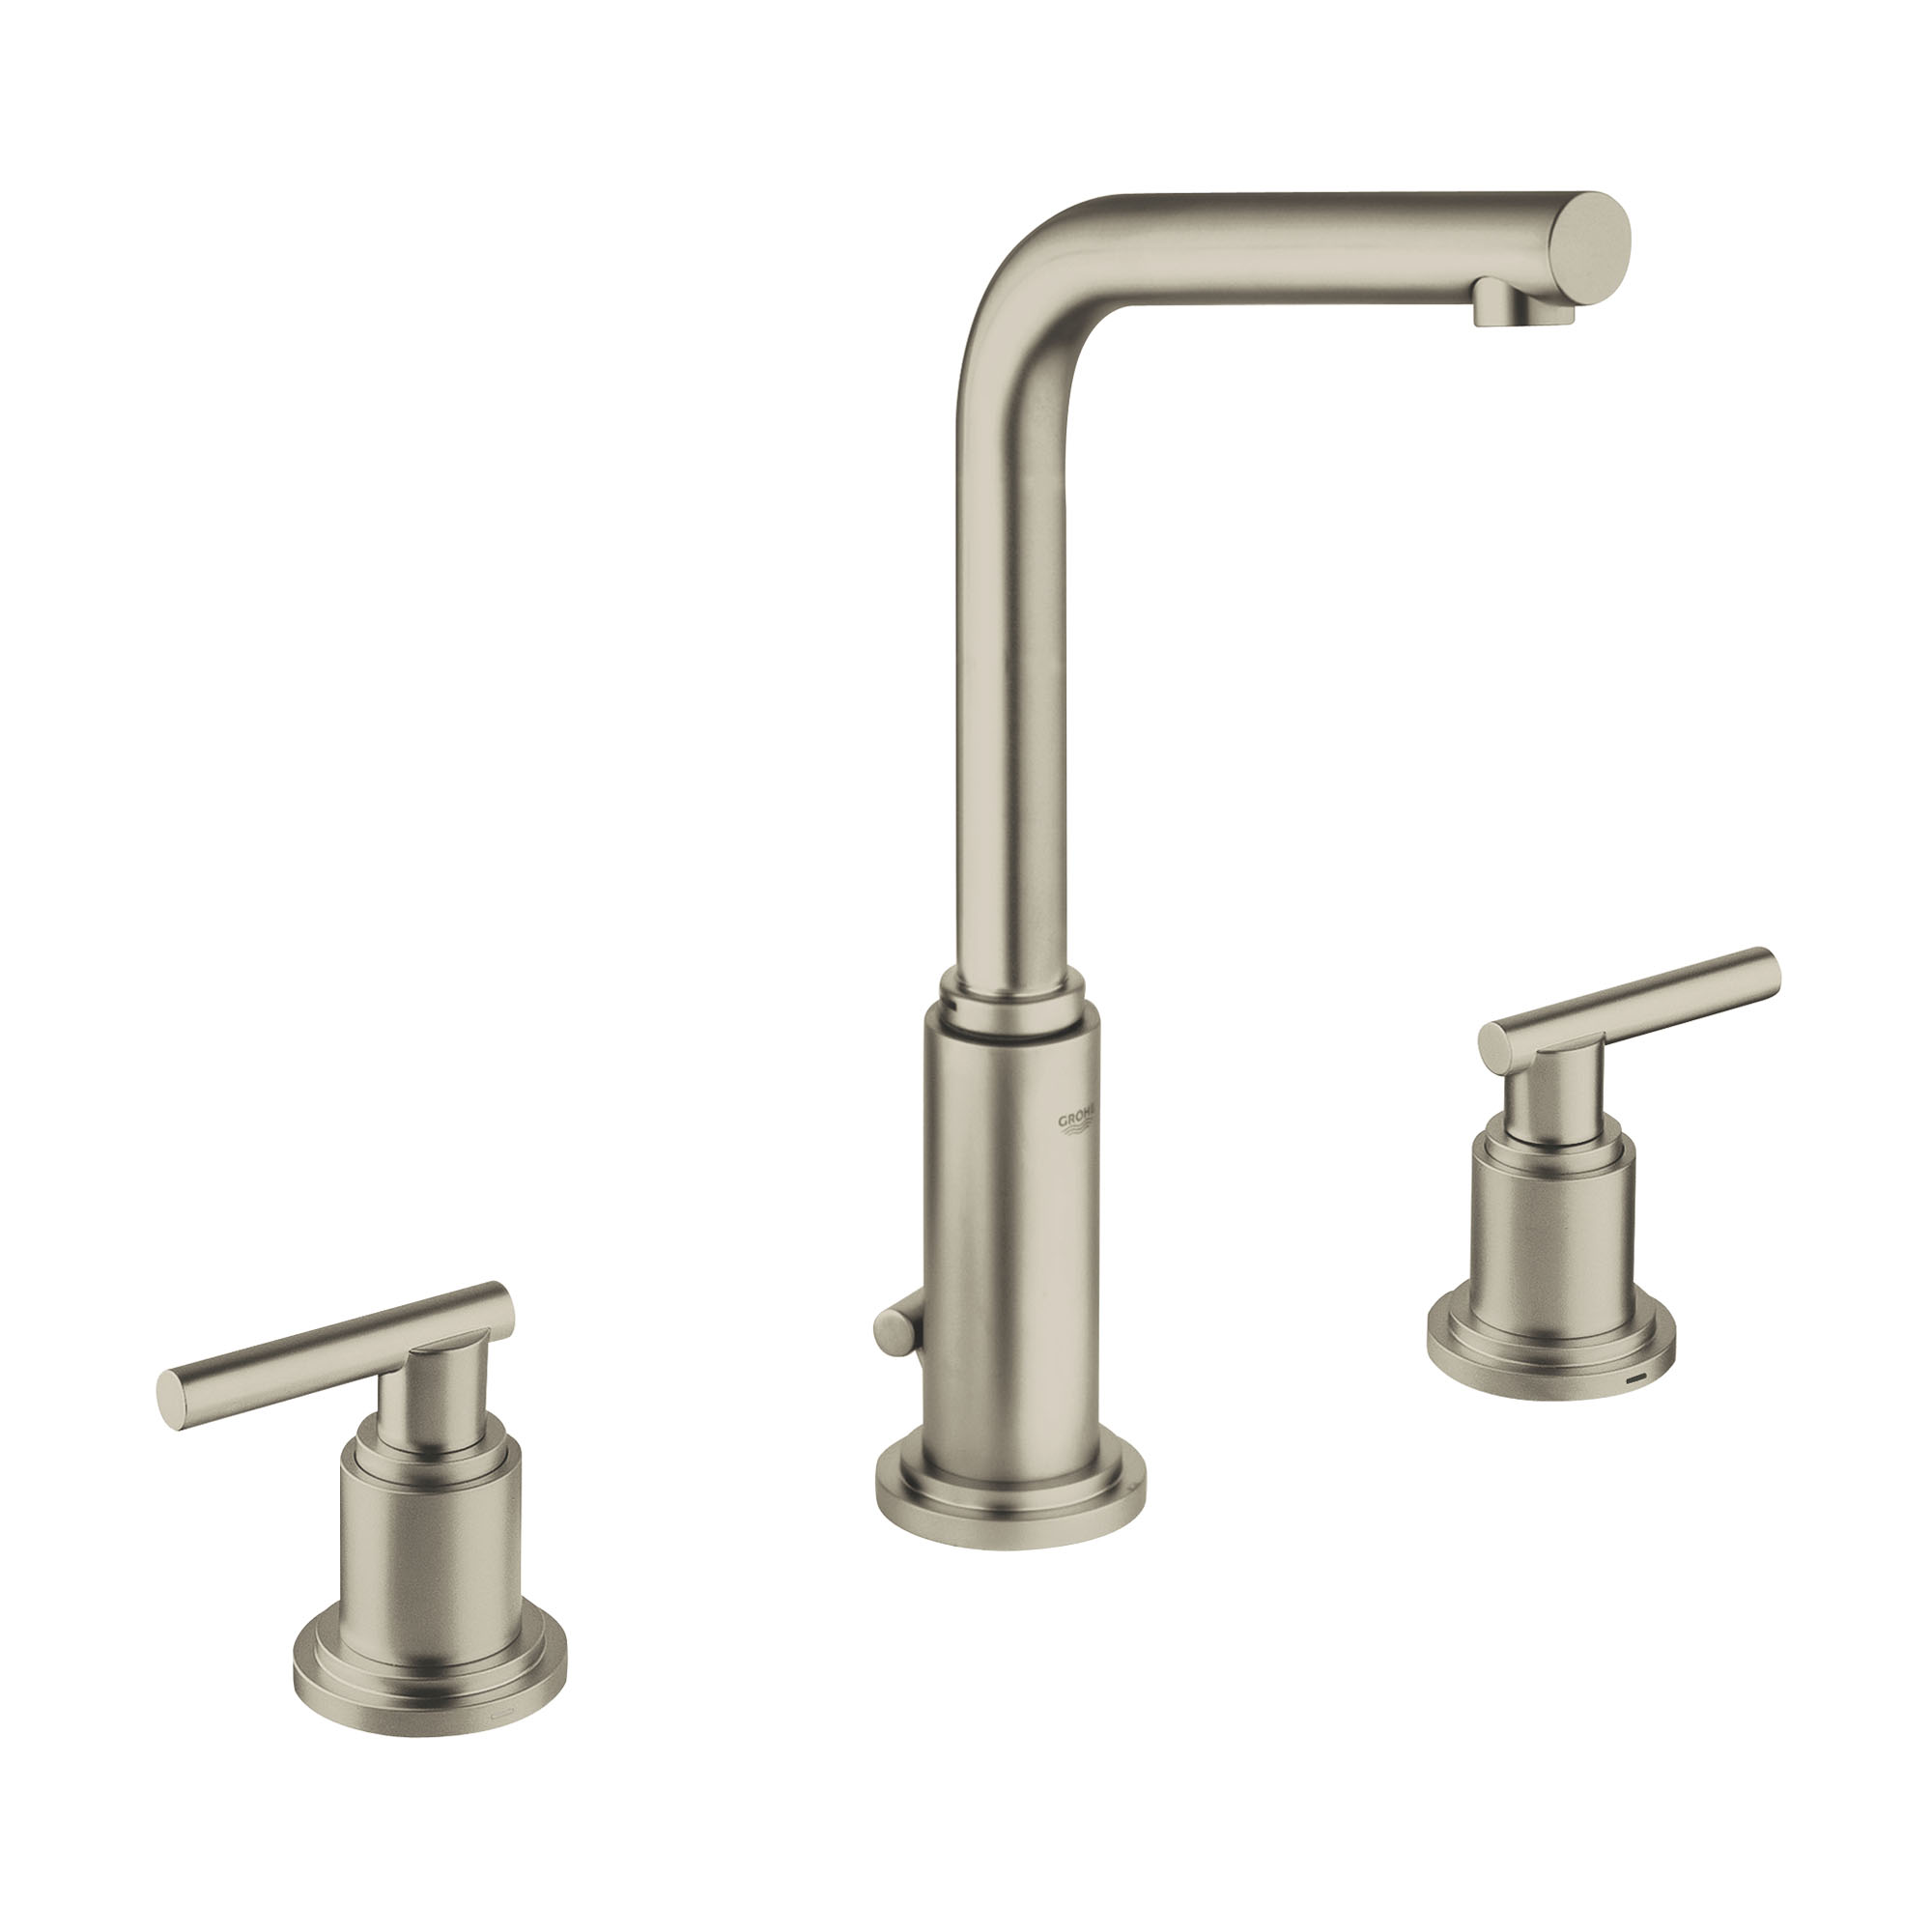 Brushed Nickel Bathroom Faucets Clearance Atrio Widespread 2 Handle Bathroom Faucet Clearance